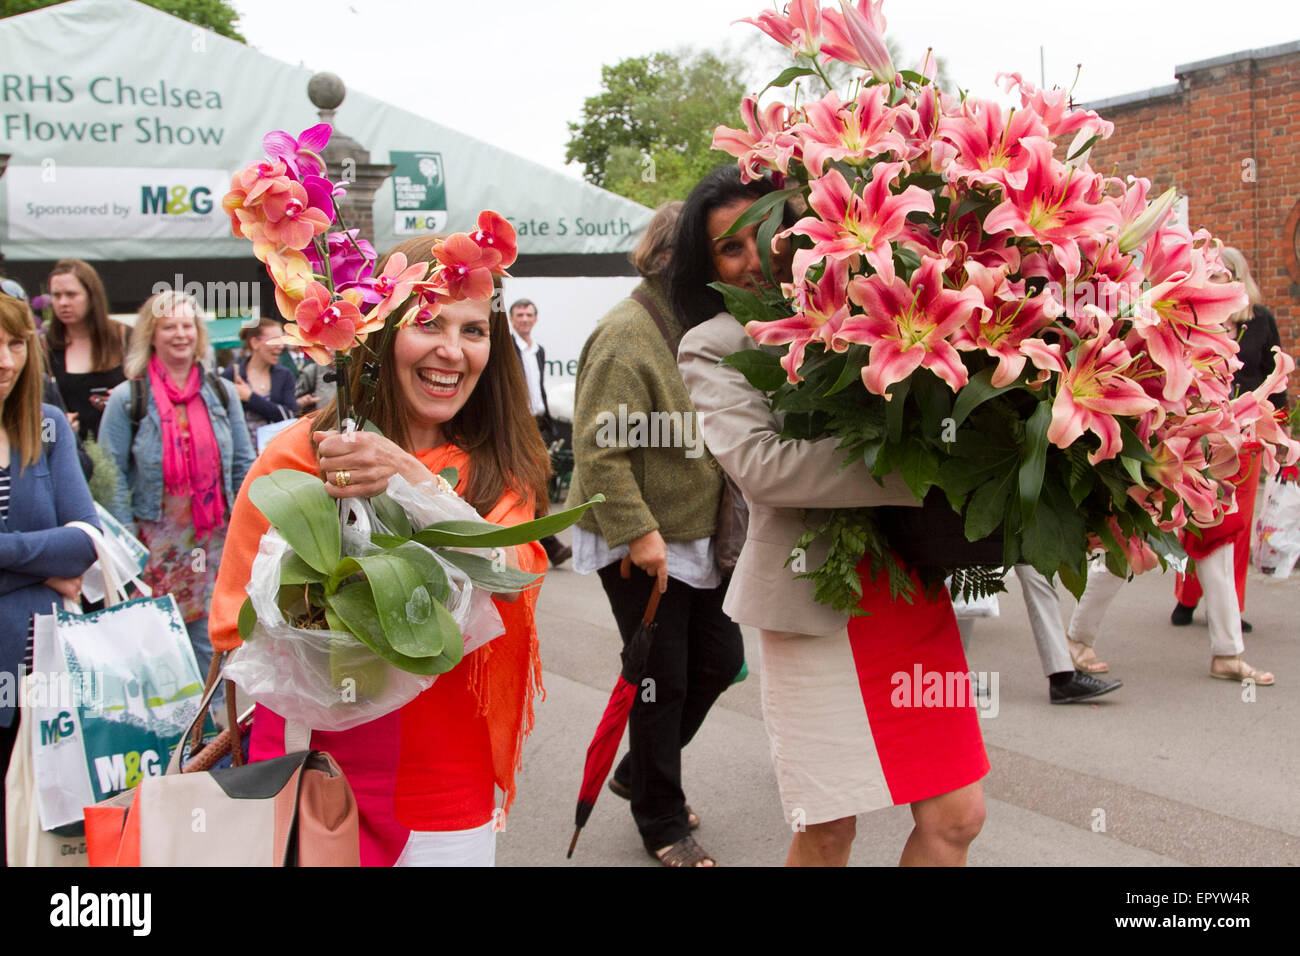 London UK. 23rd May 2015. Members of the public carry colorful  flowers and plants in a sell off on the last day - Stock Image